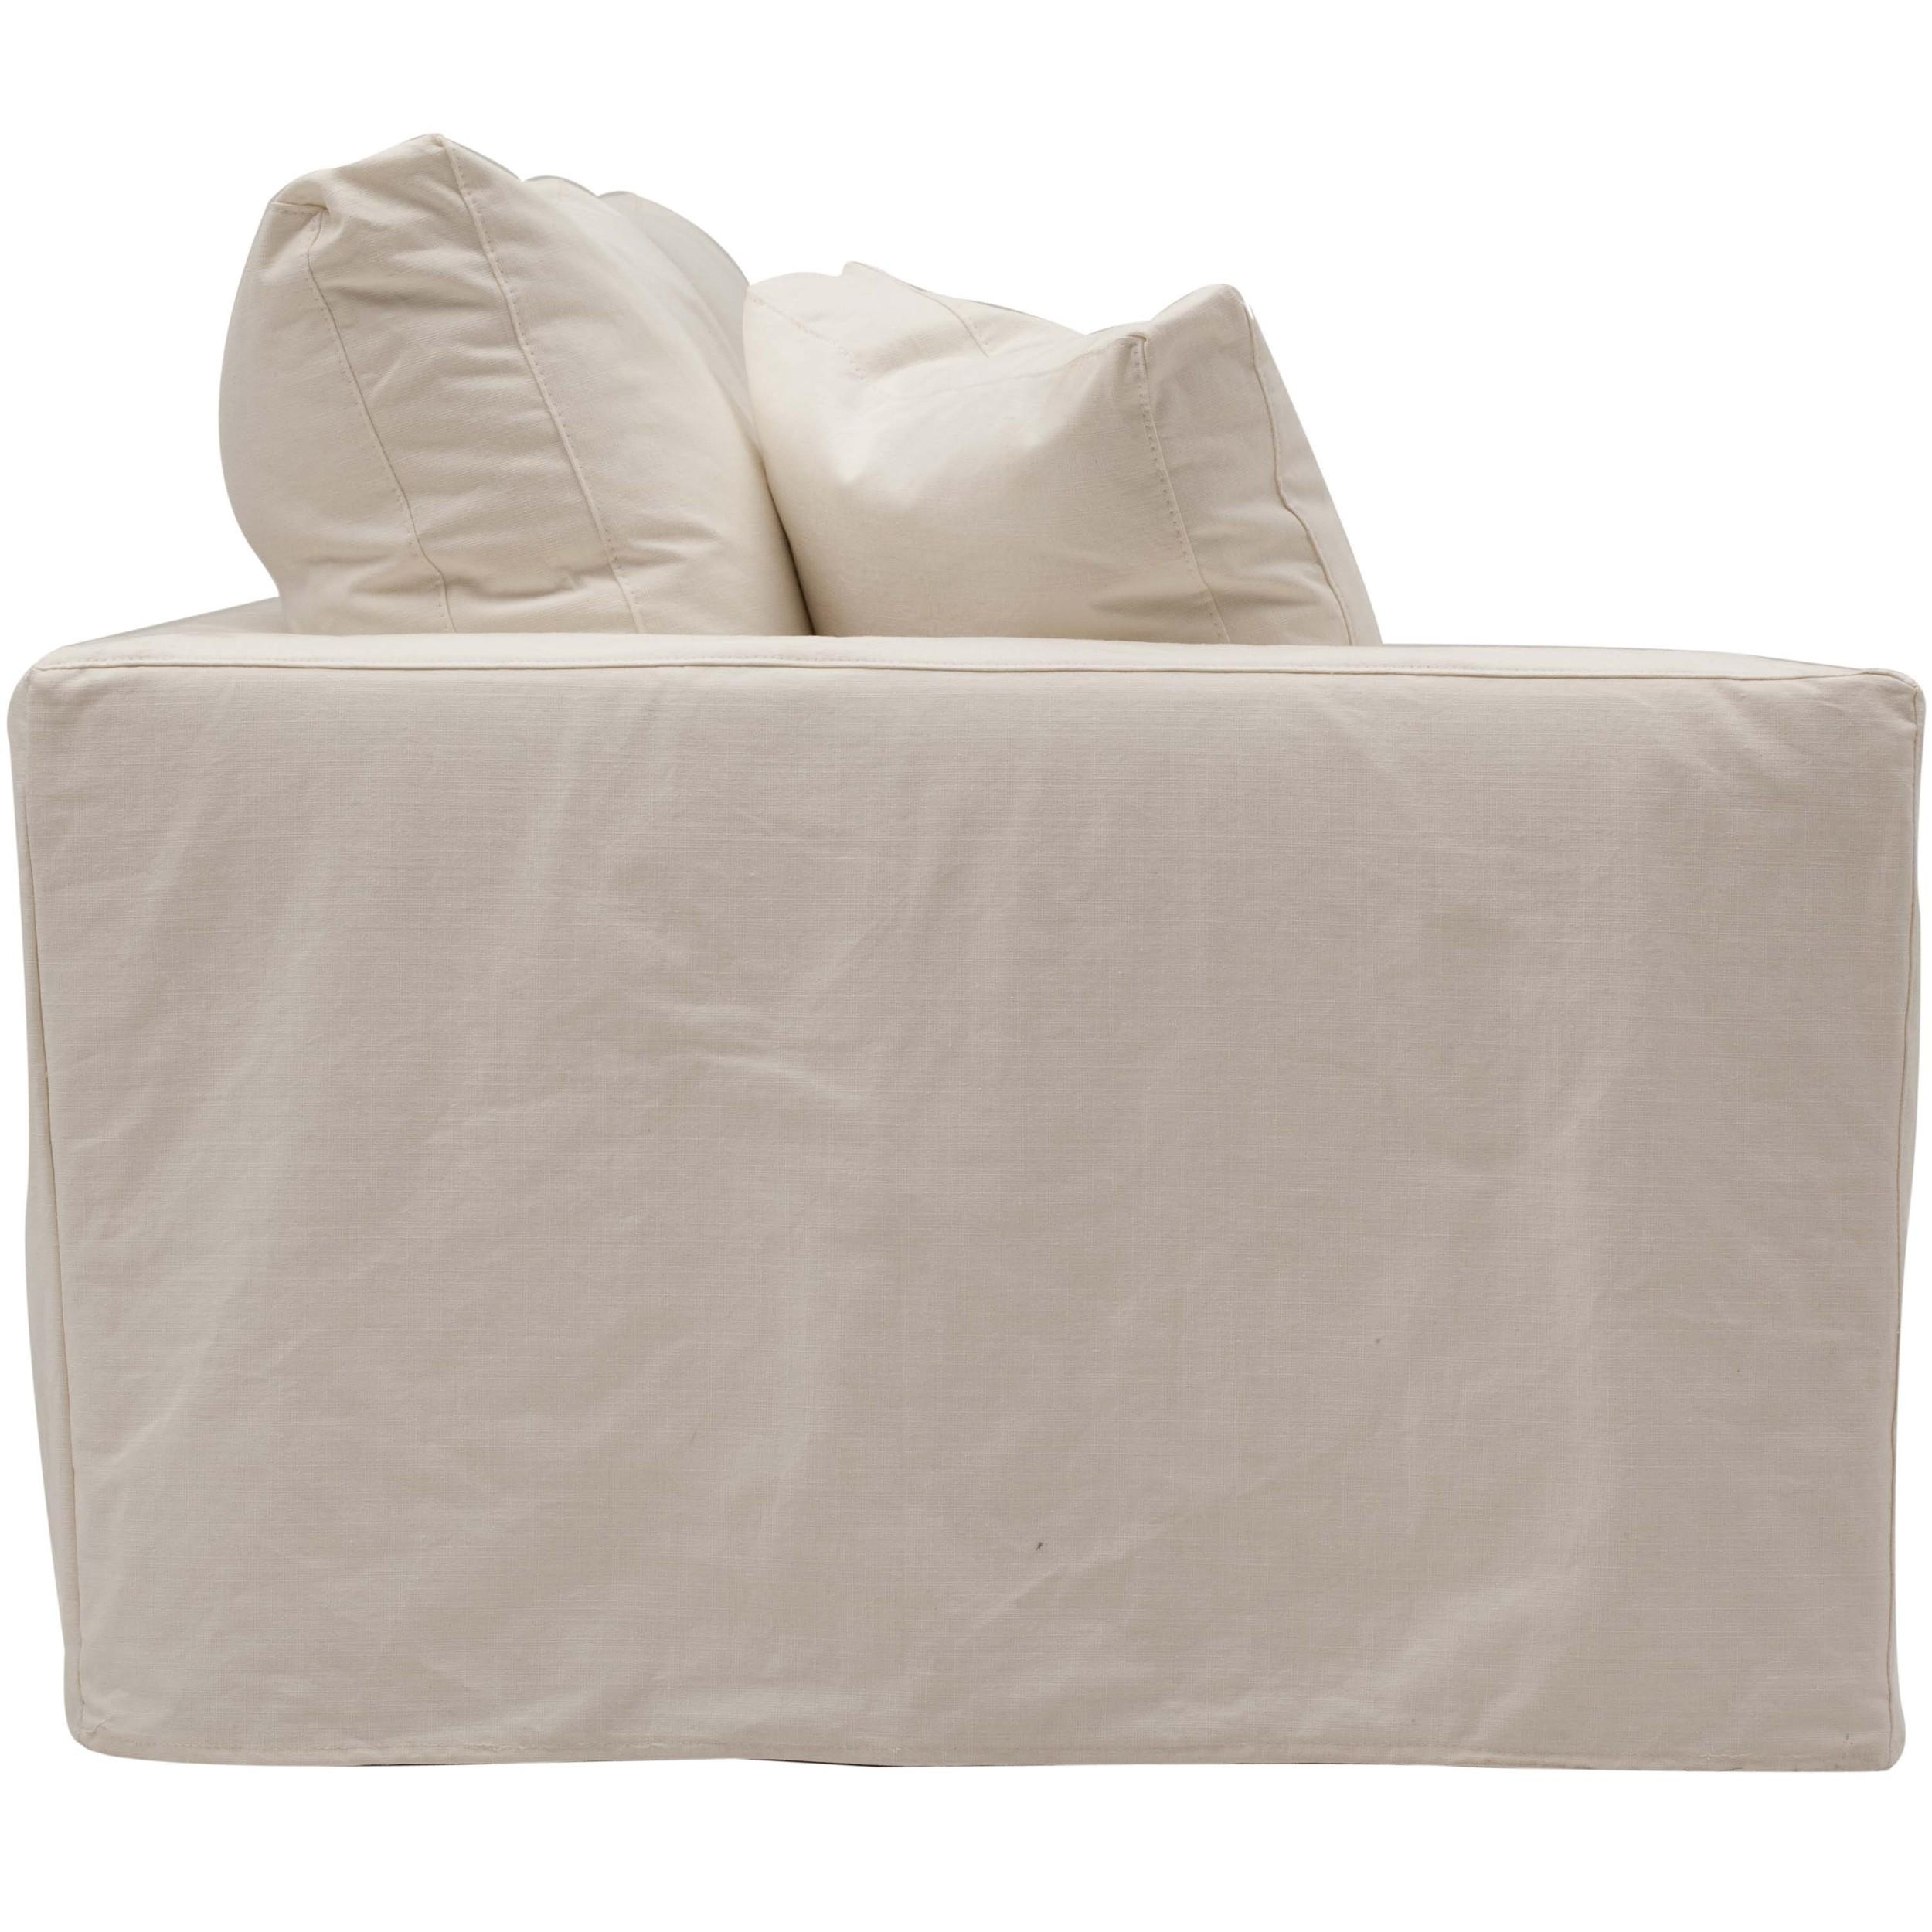 Jenna Slipcover Sectional, Dyno White – Fabric – Sofas – Furniture Intended For White Fabric Sofas (View 16 of 20)